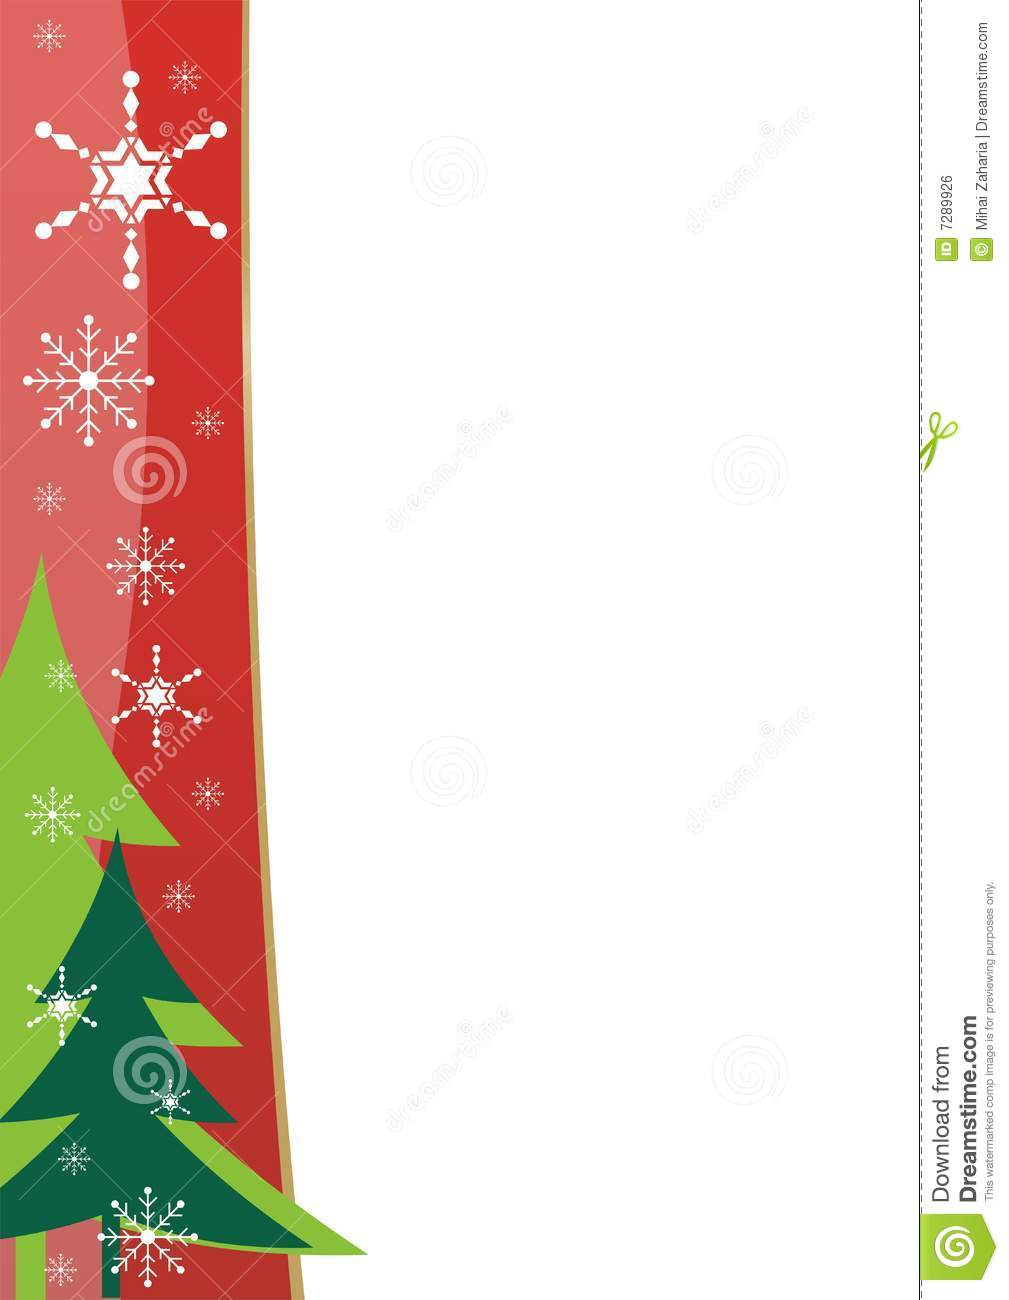 free christmas templates - christmas border template stock vector illustration of